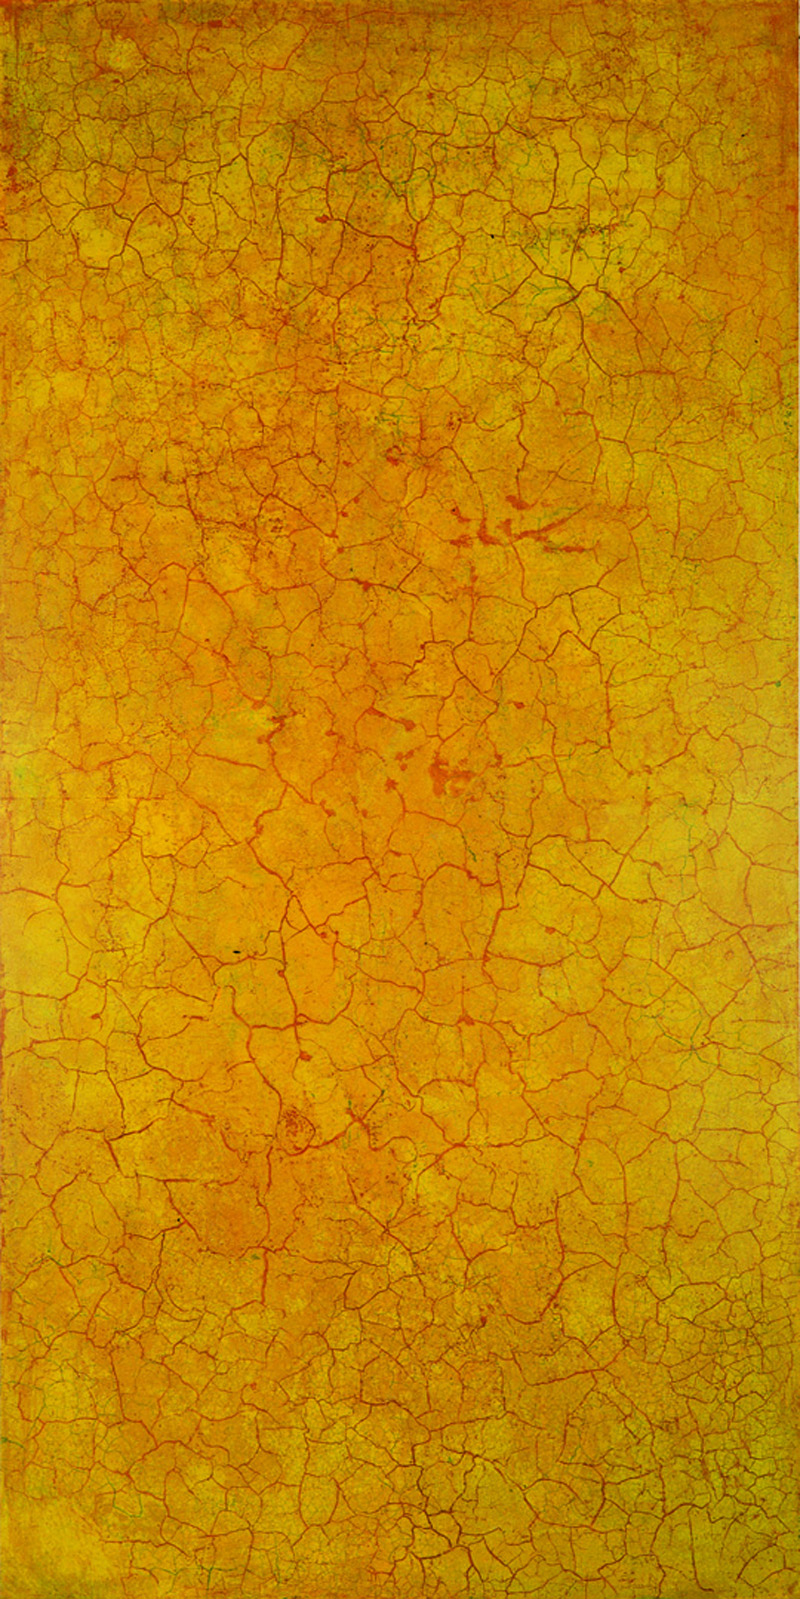 Krakelering # 1 . 1995. Lacquer, oil and pigment on birch plywood. 280 x 140 cm.